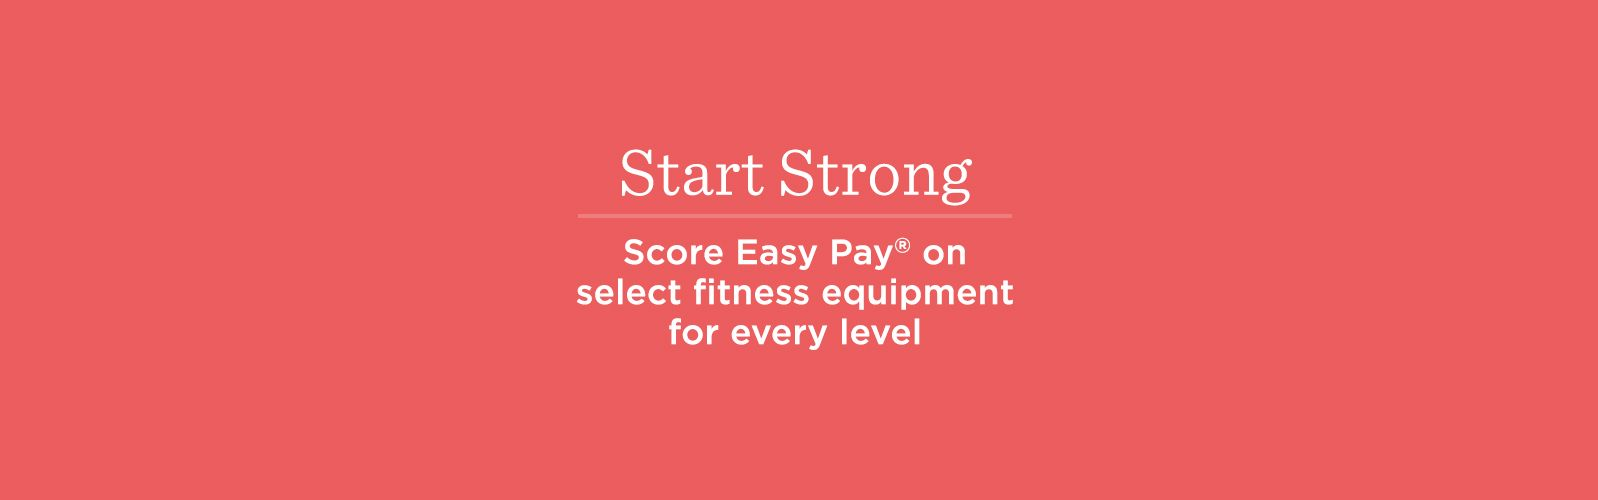 Start Strong — Score Easy Pay® on select fitness equipment for every level